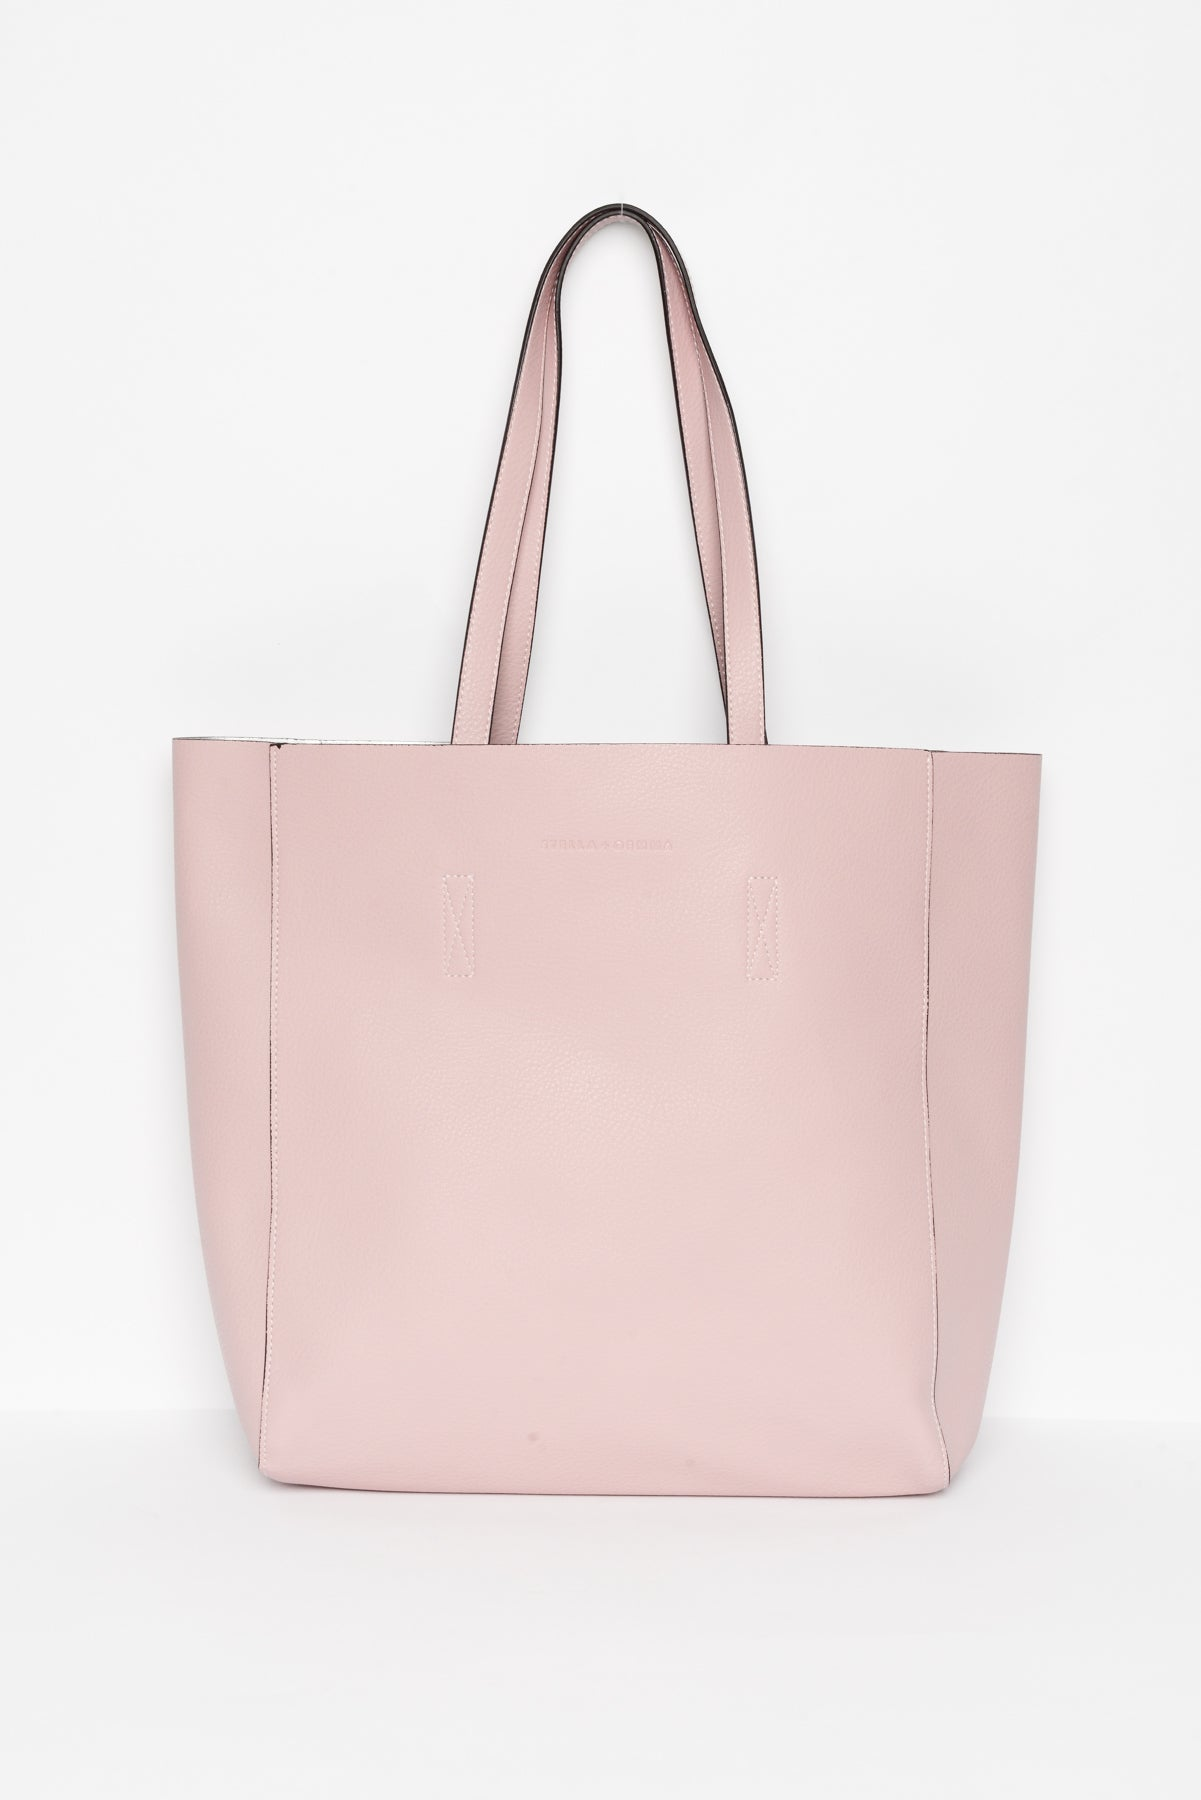 Ingrid Pink Vegan Leather Tote - Blue Bungalow